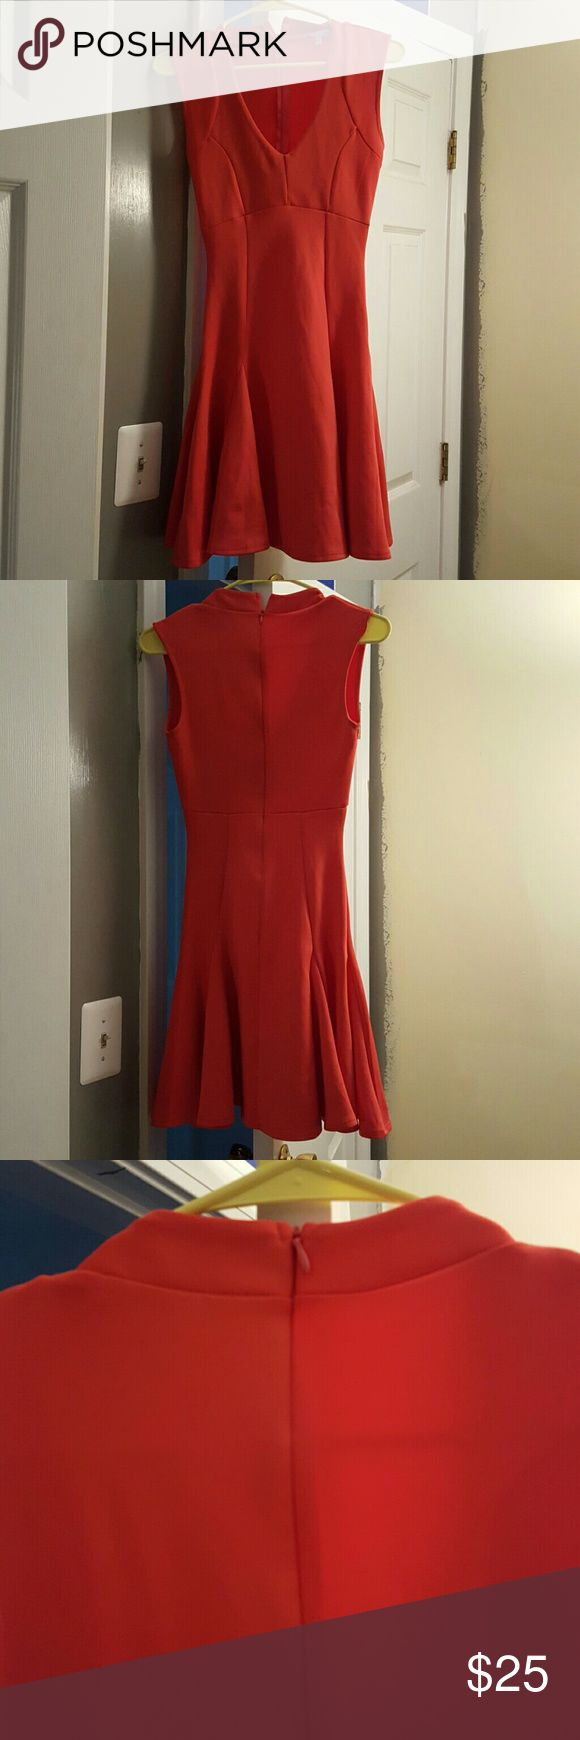 Coral V-neck Dress Worn once, from a smoke free home. Stretchy material with a tight fitting top and a flowy bottom, similar to a skater dress. Zipper is located on the back.  Can be dressed up easily, or can be worn by itself casually. Charlotte Russe Dresses